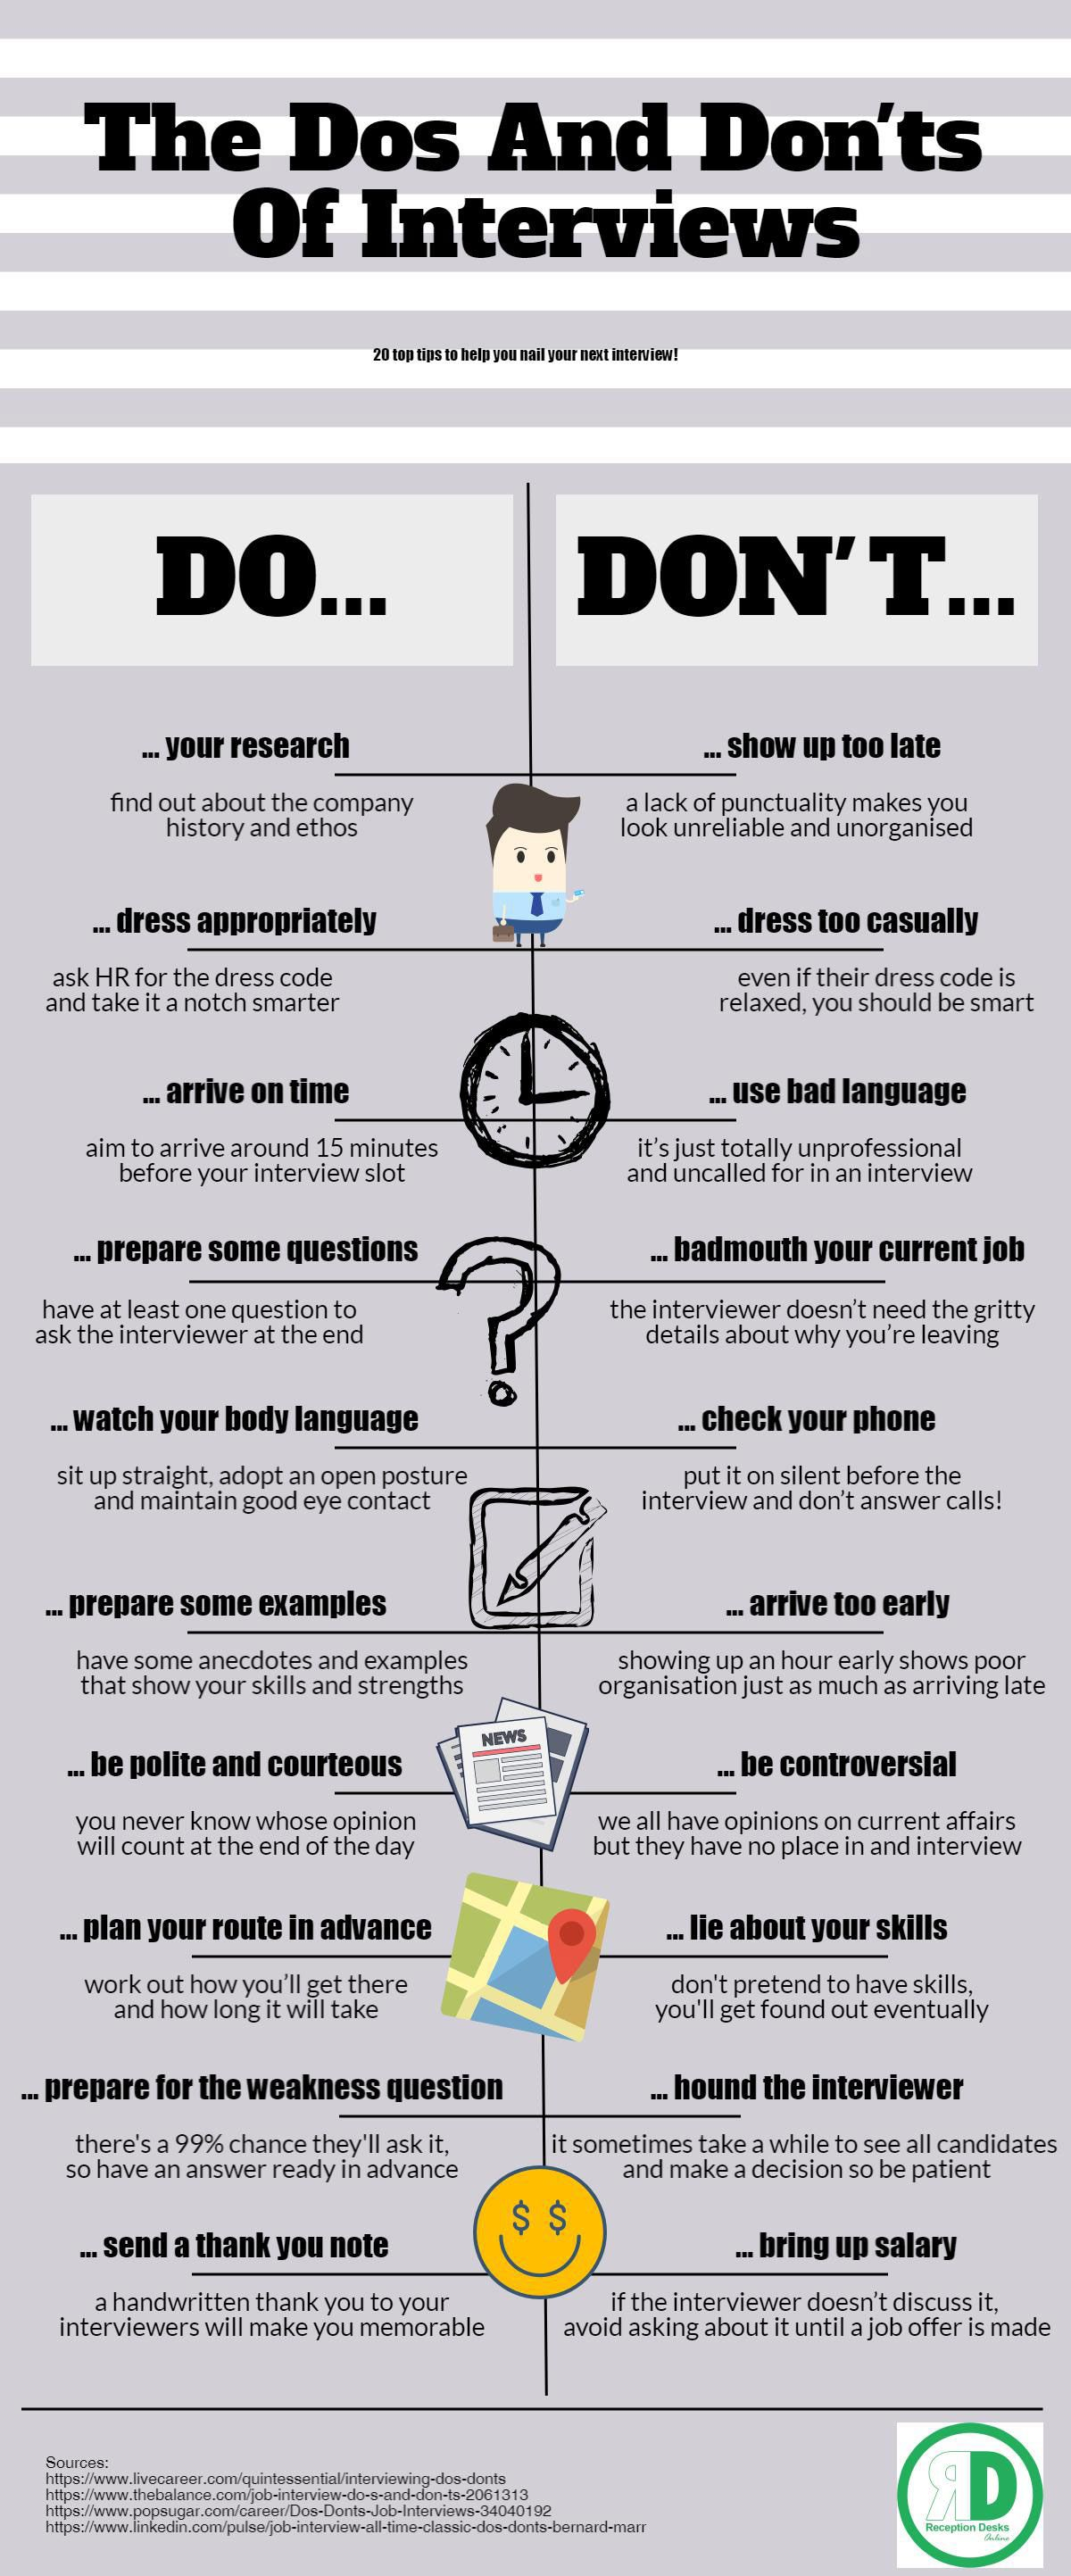 20 dos and donts of interviewing job interview tips